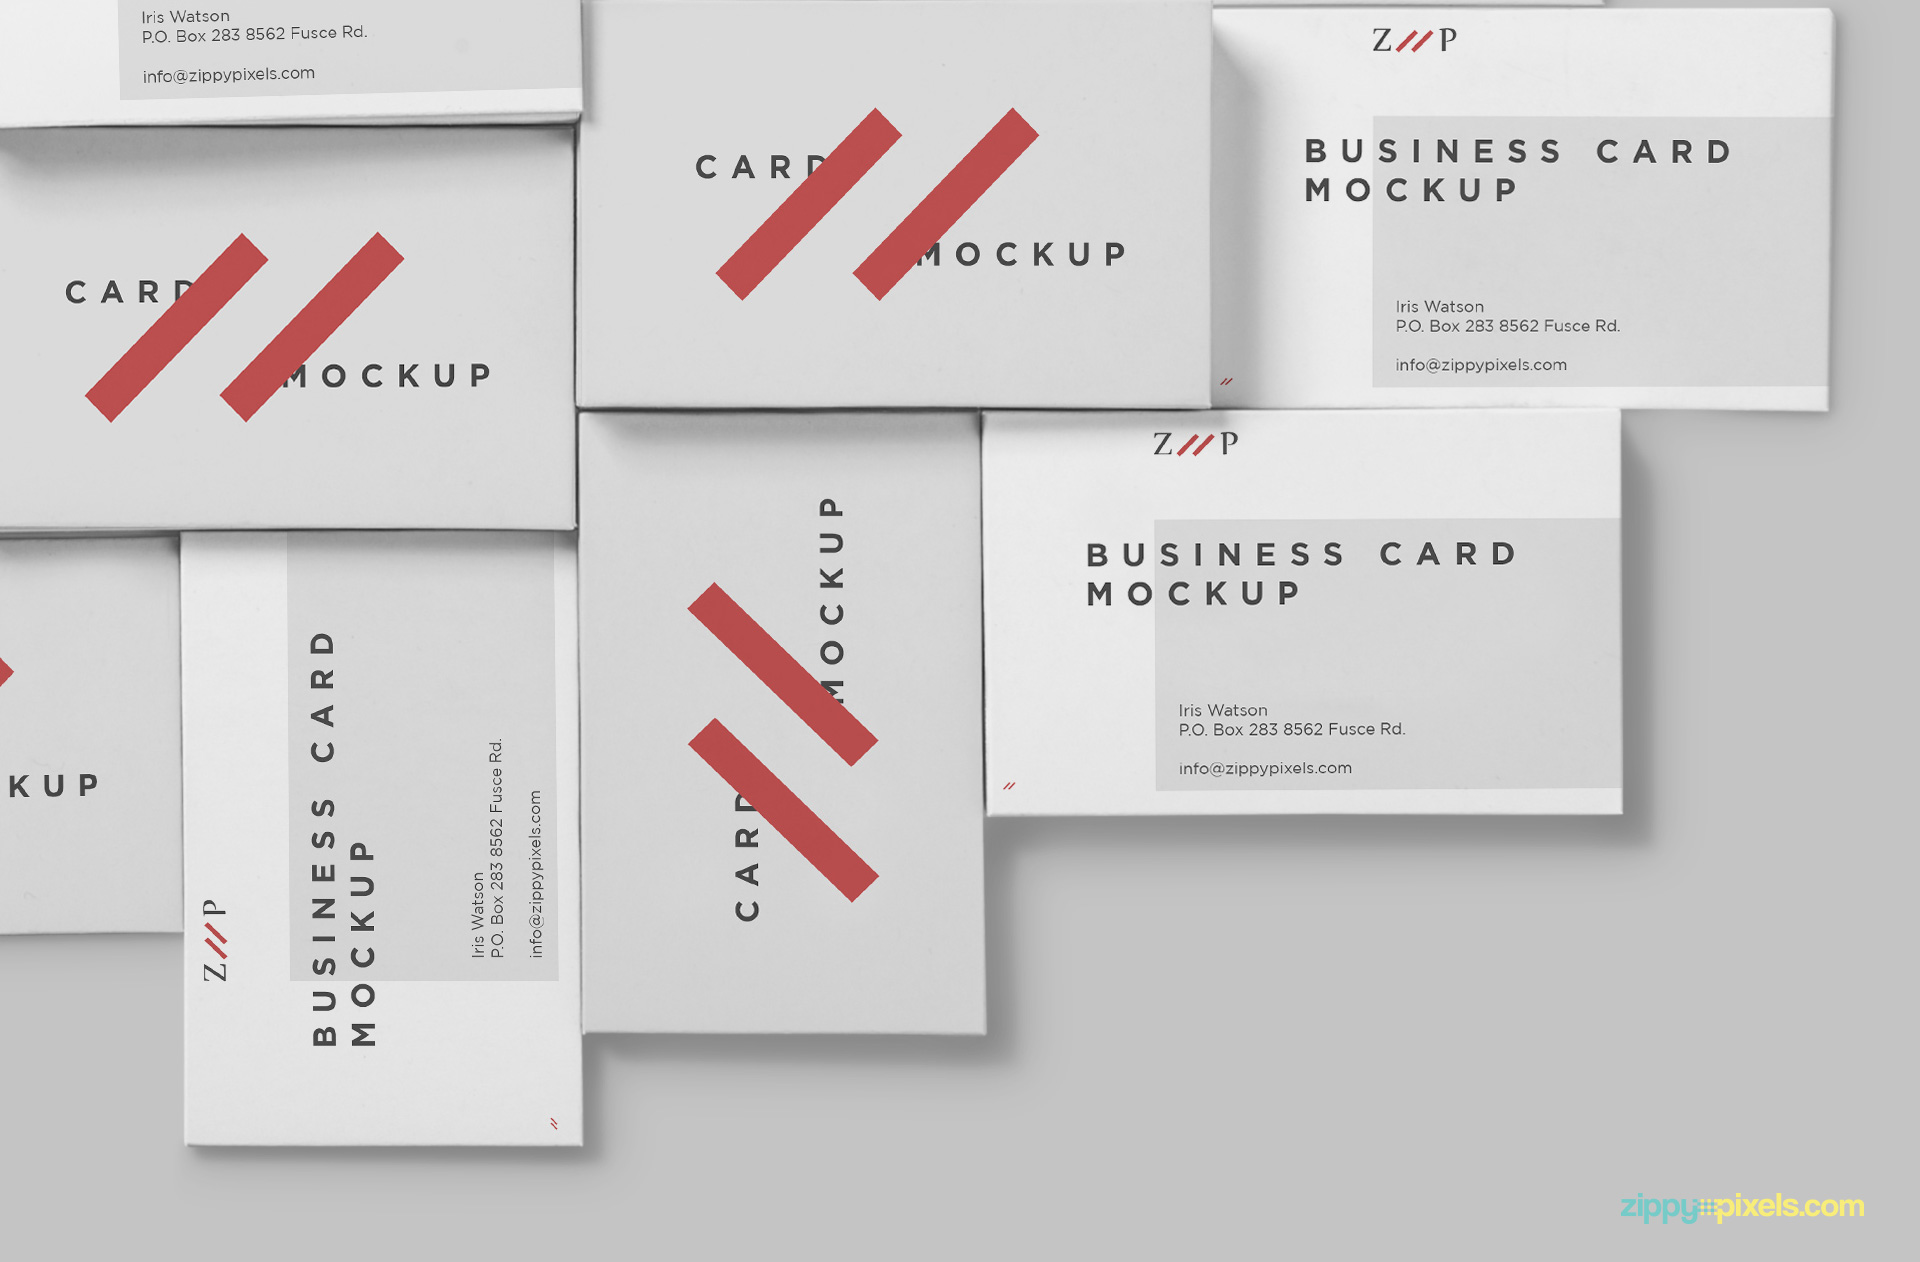 Business cards mockup from top view.